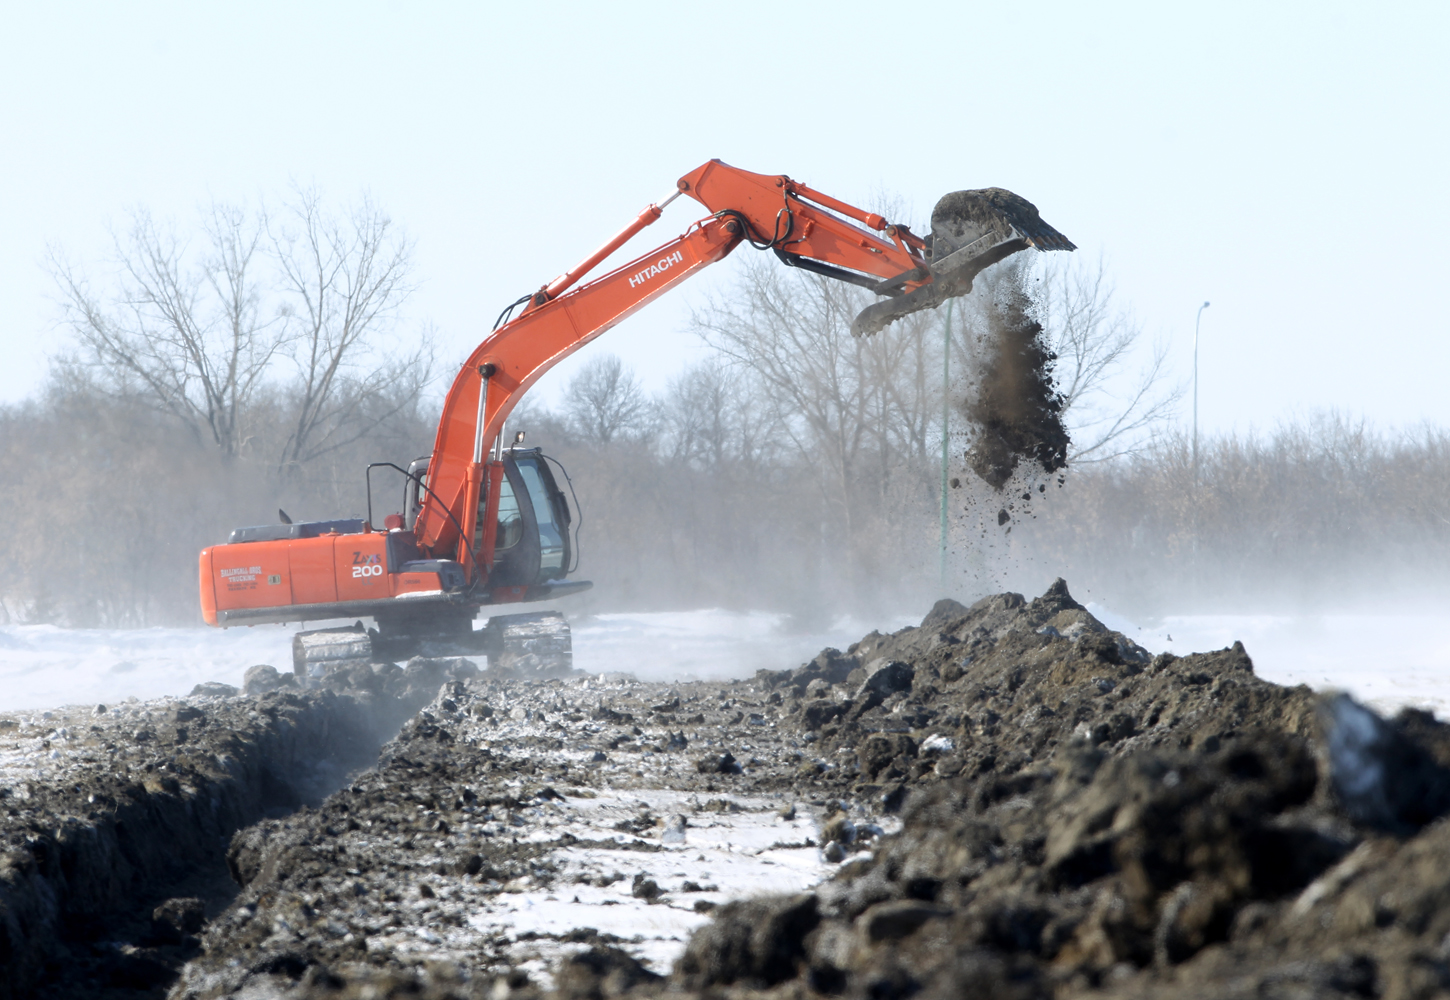 Work on the dike on the north side of the Assiniboine River at the Riverbank Discovery Centre was being done on March 1. (Tim Smith/Brandon Sun)